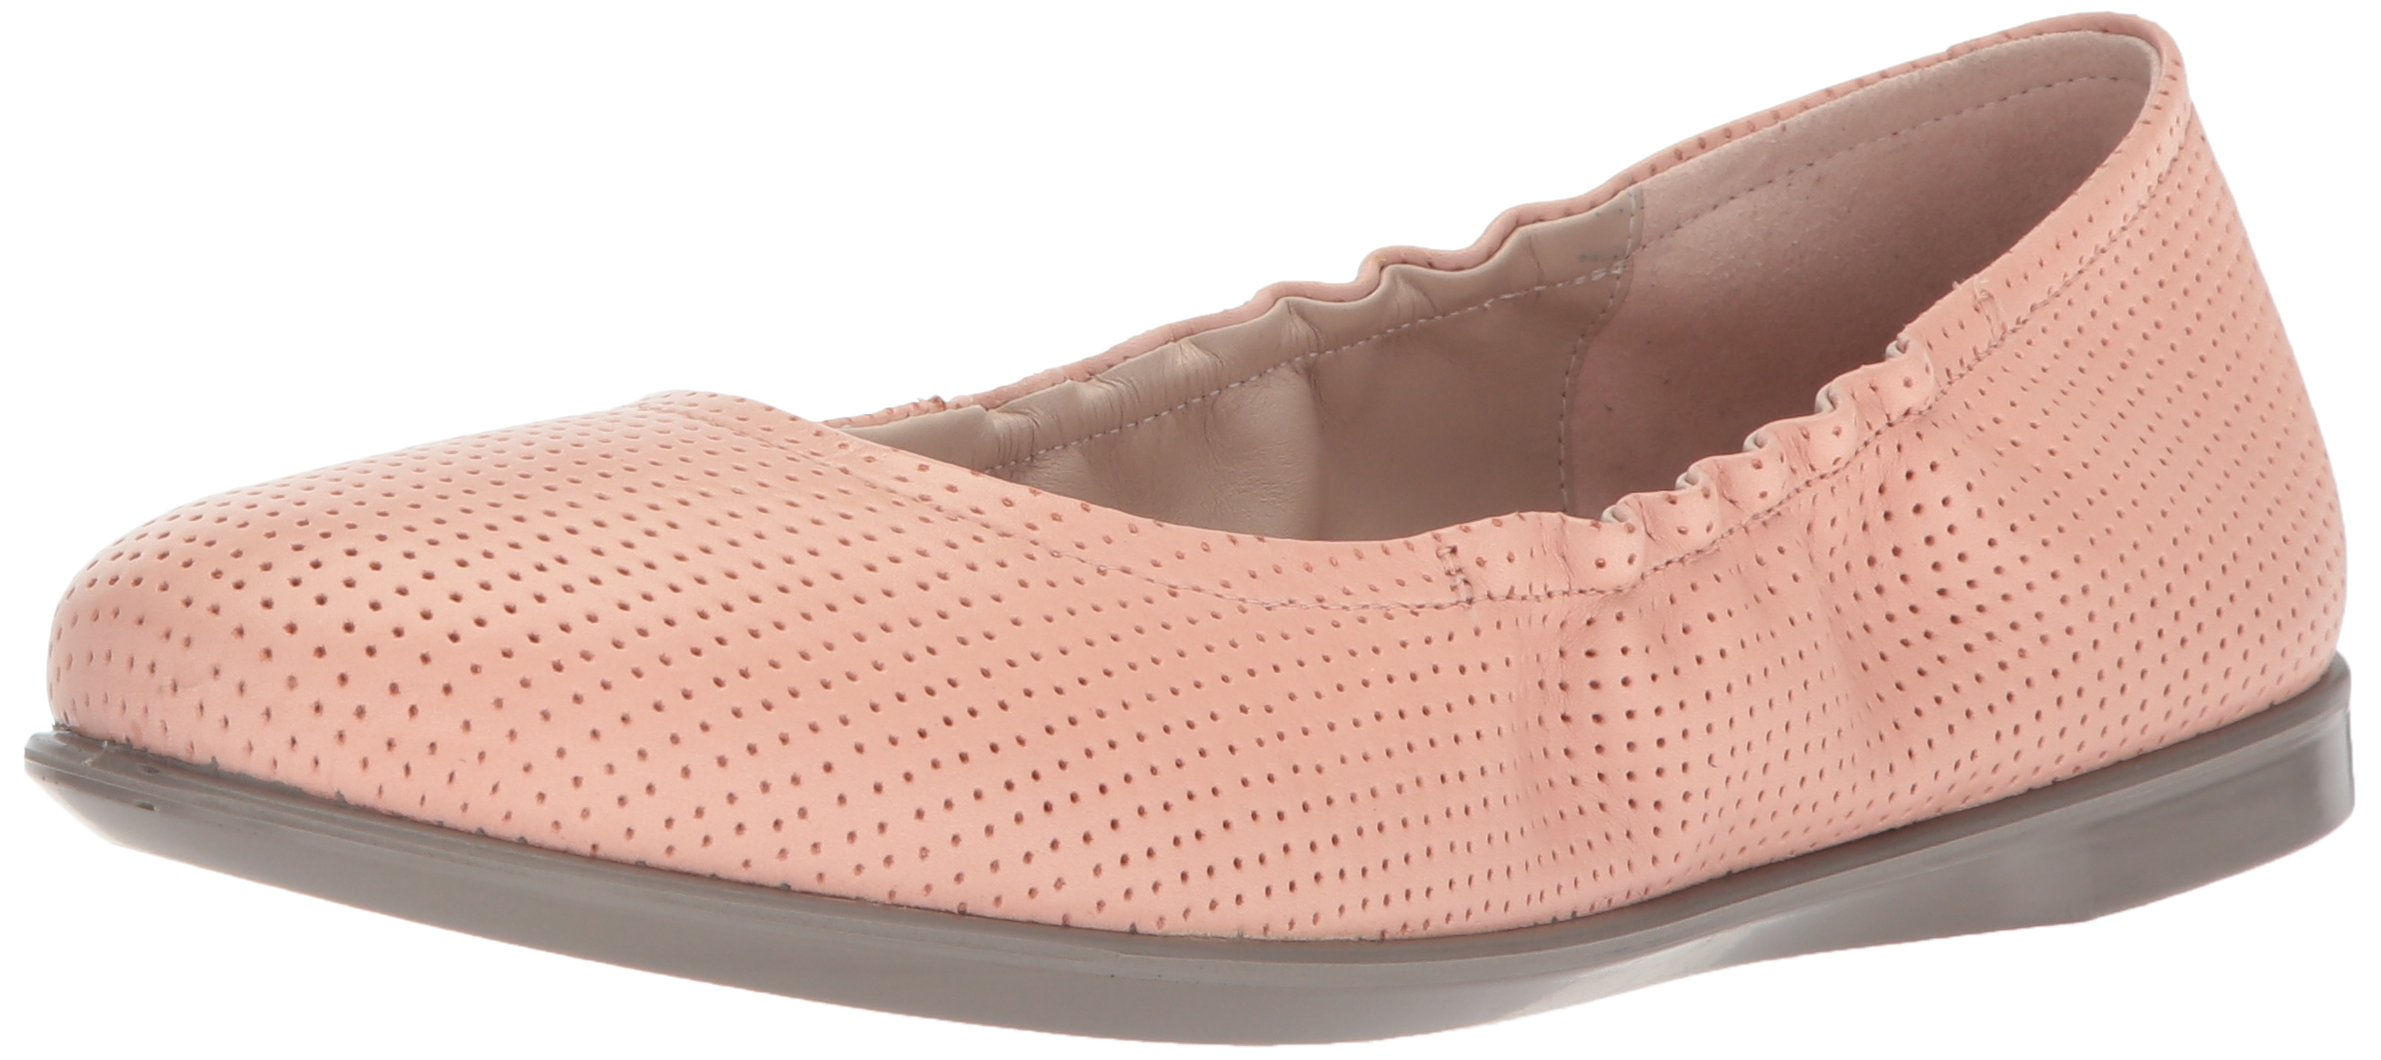 ECCO Women's Women's Incise Enchant Slip On Ballet Flat, Muted Clay, 39 M EU (8-8.5 US)